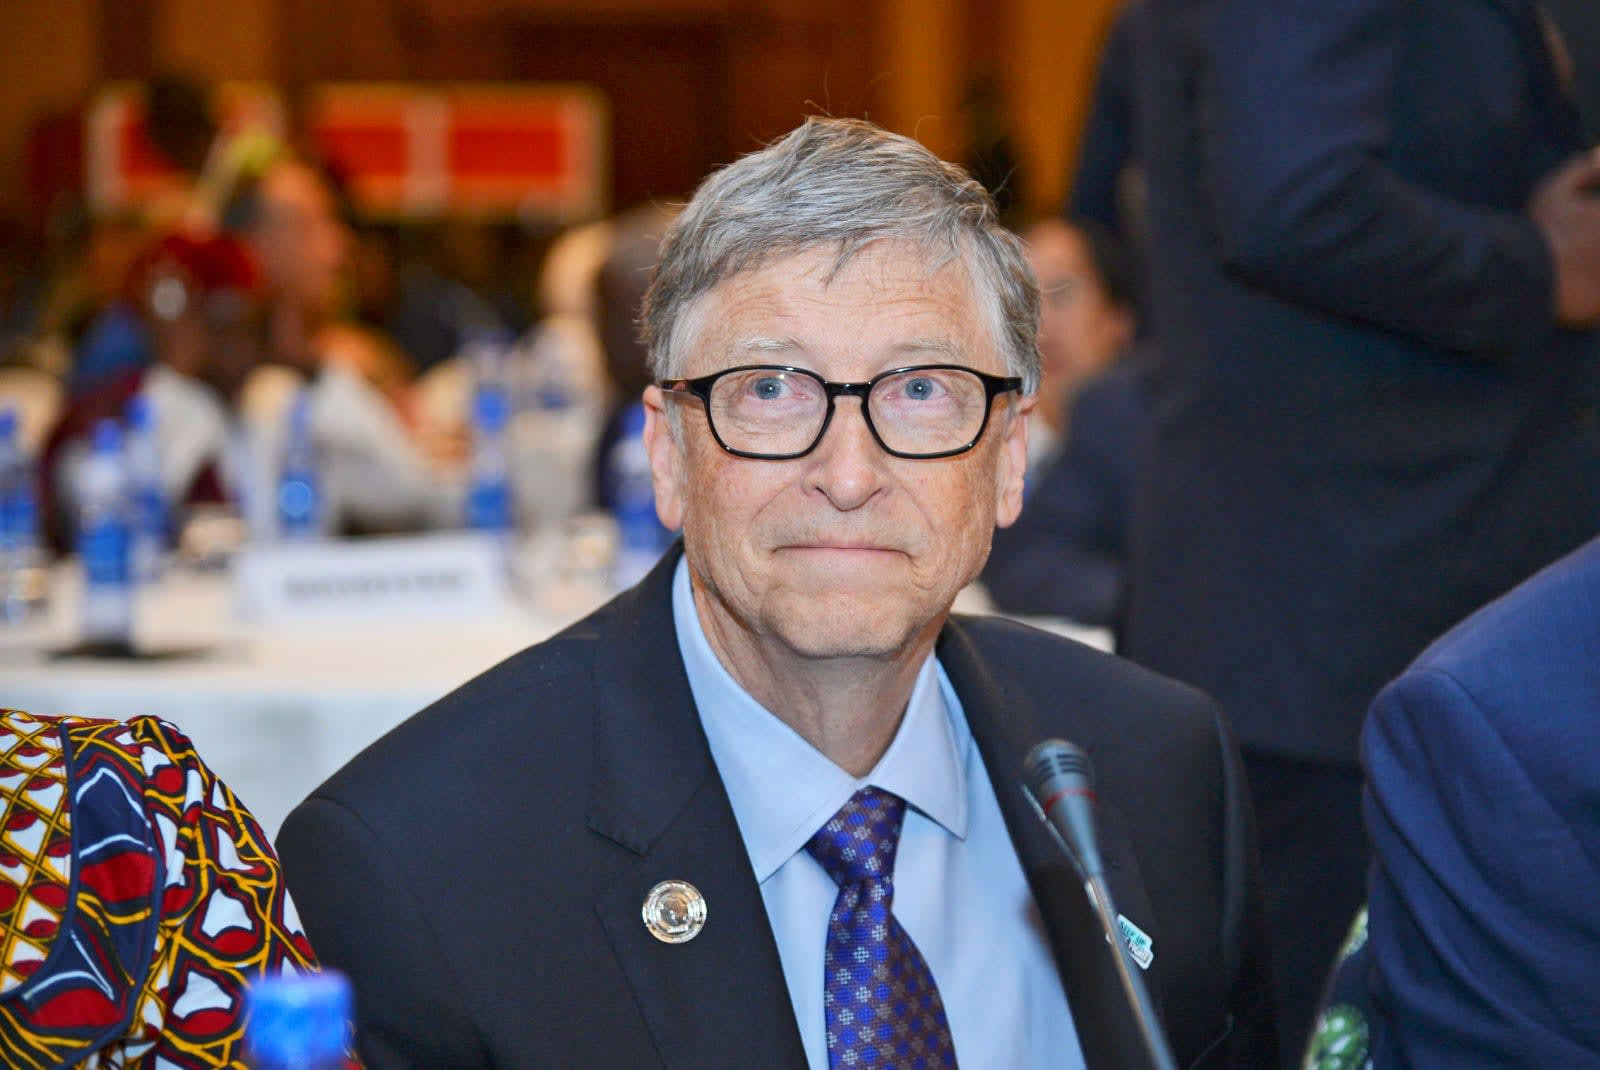 Netflix will peer inside Bill Gates' mind with a new docuseries